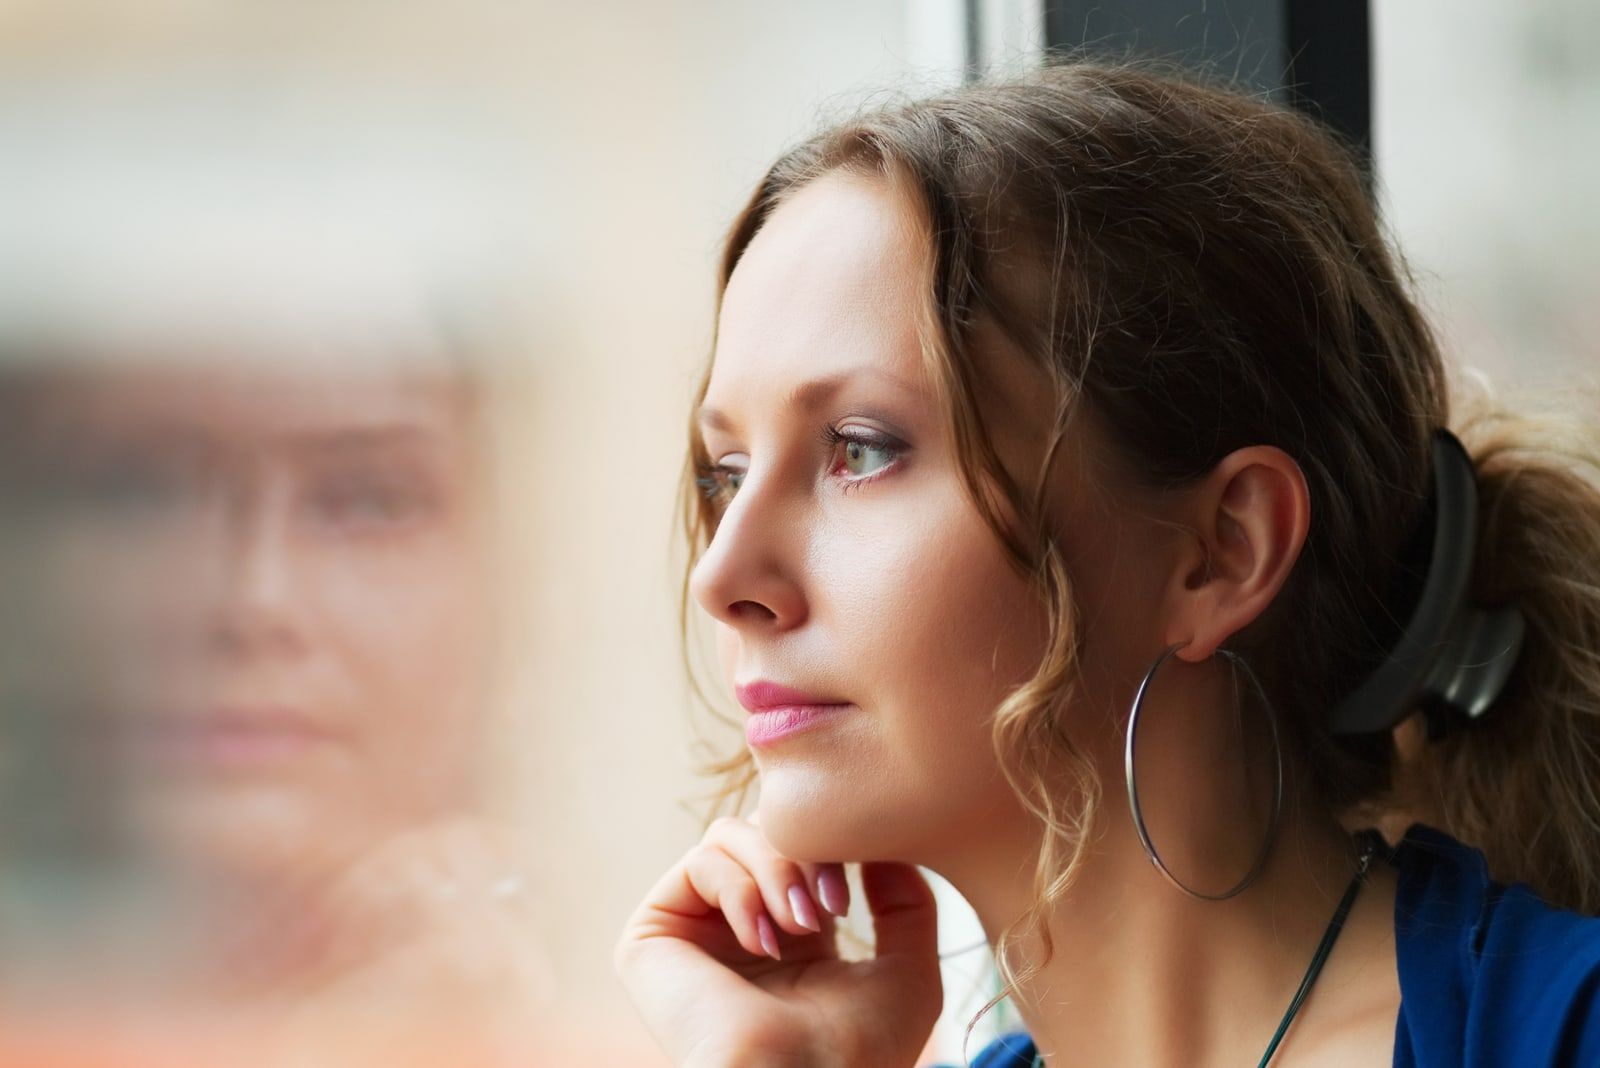 mindful woman looking at distance through window